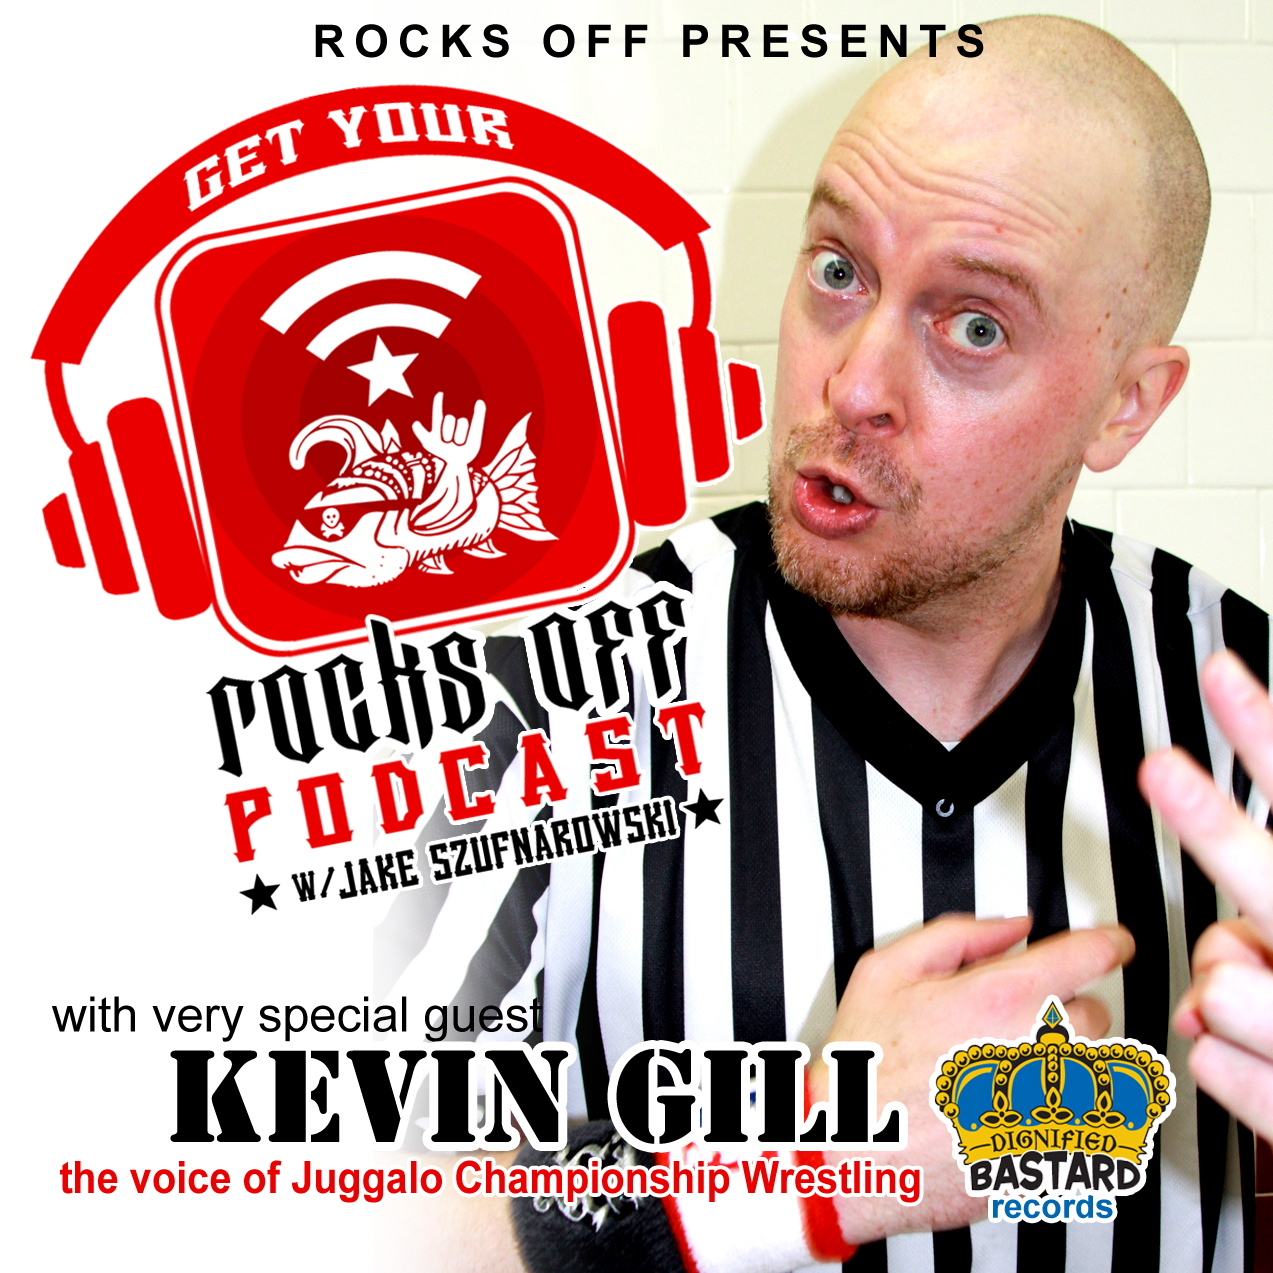 8. Get Your Rocks Off With Kevin Gill